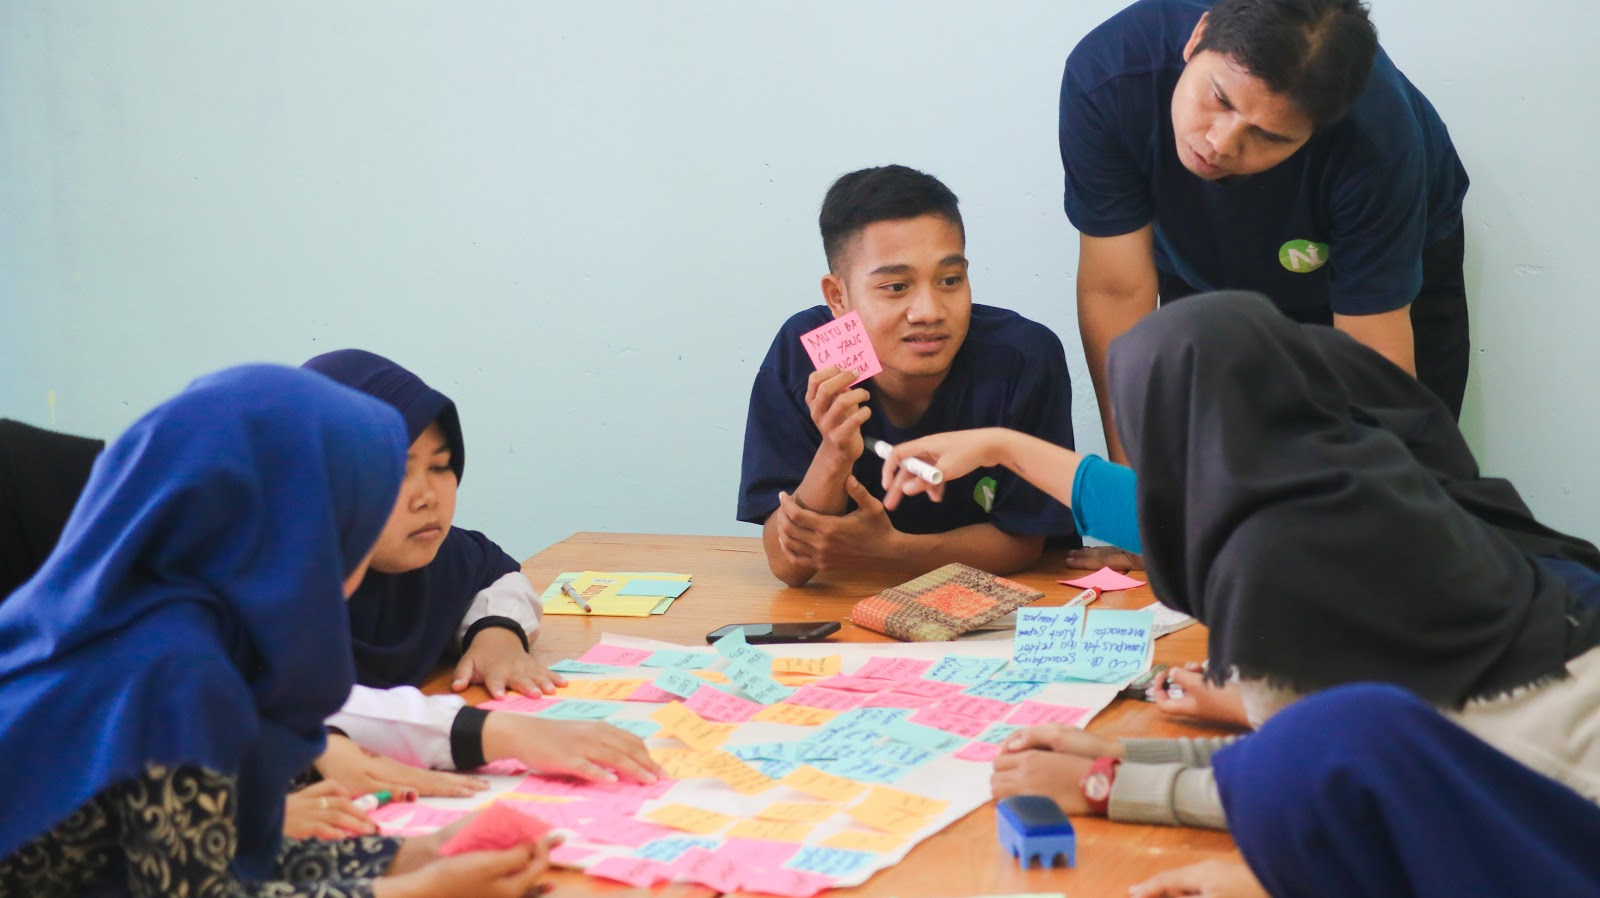 Two adults appear to be facilitating a group project discussion among four students.  There is a poster board covered with colored post-it notes in the center of the table.  The teacher is holding up one of the colored notes as he speaks with the students.